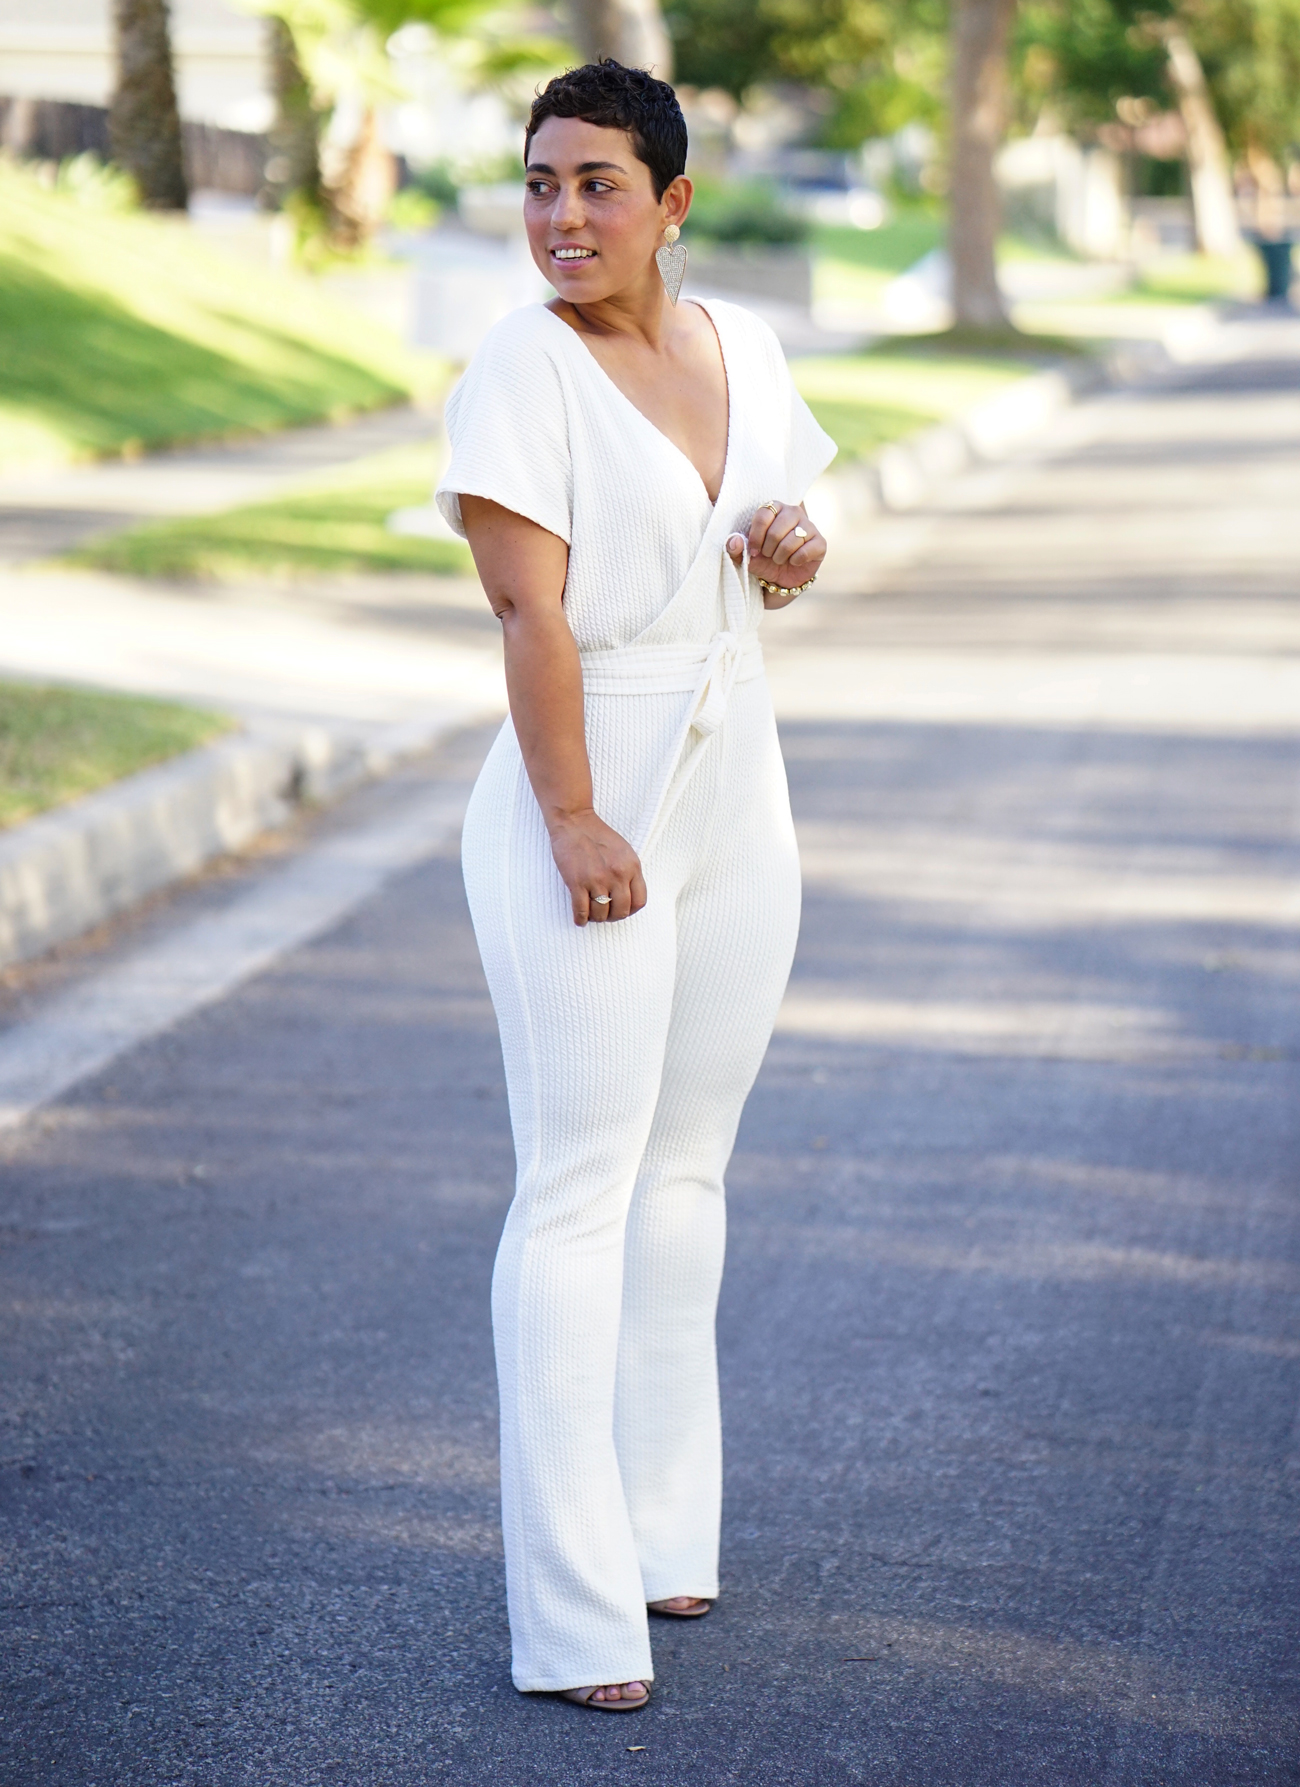 Diy White Cable Knit Jumpsuit Using New Look 6554 Mimi G